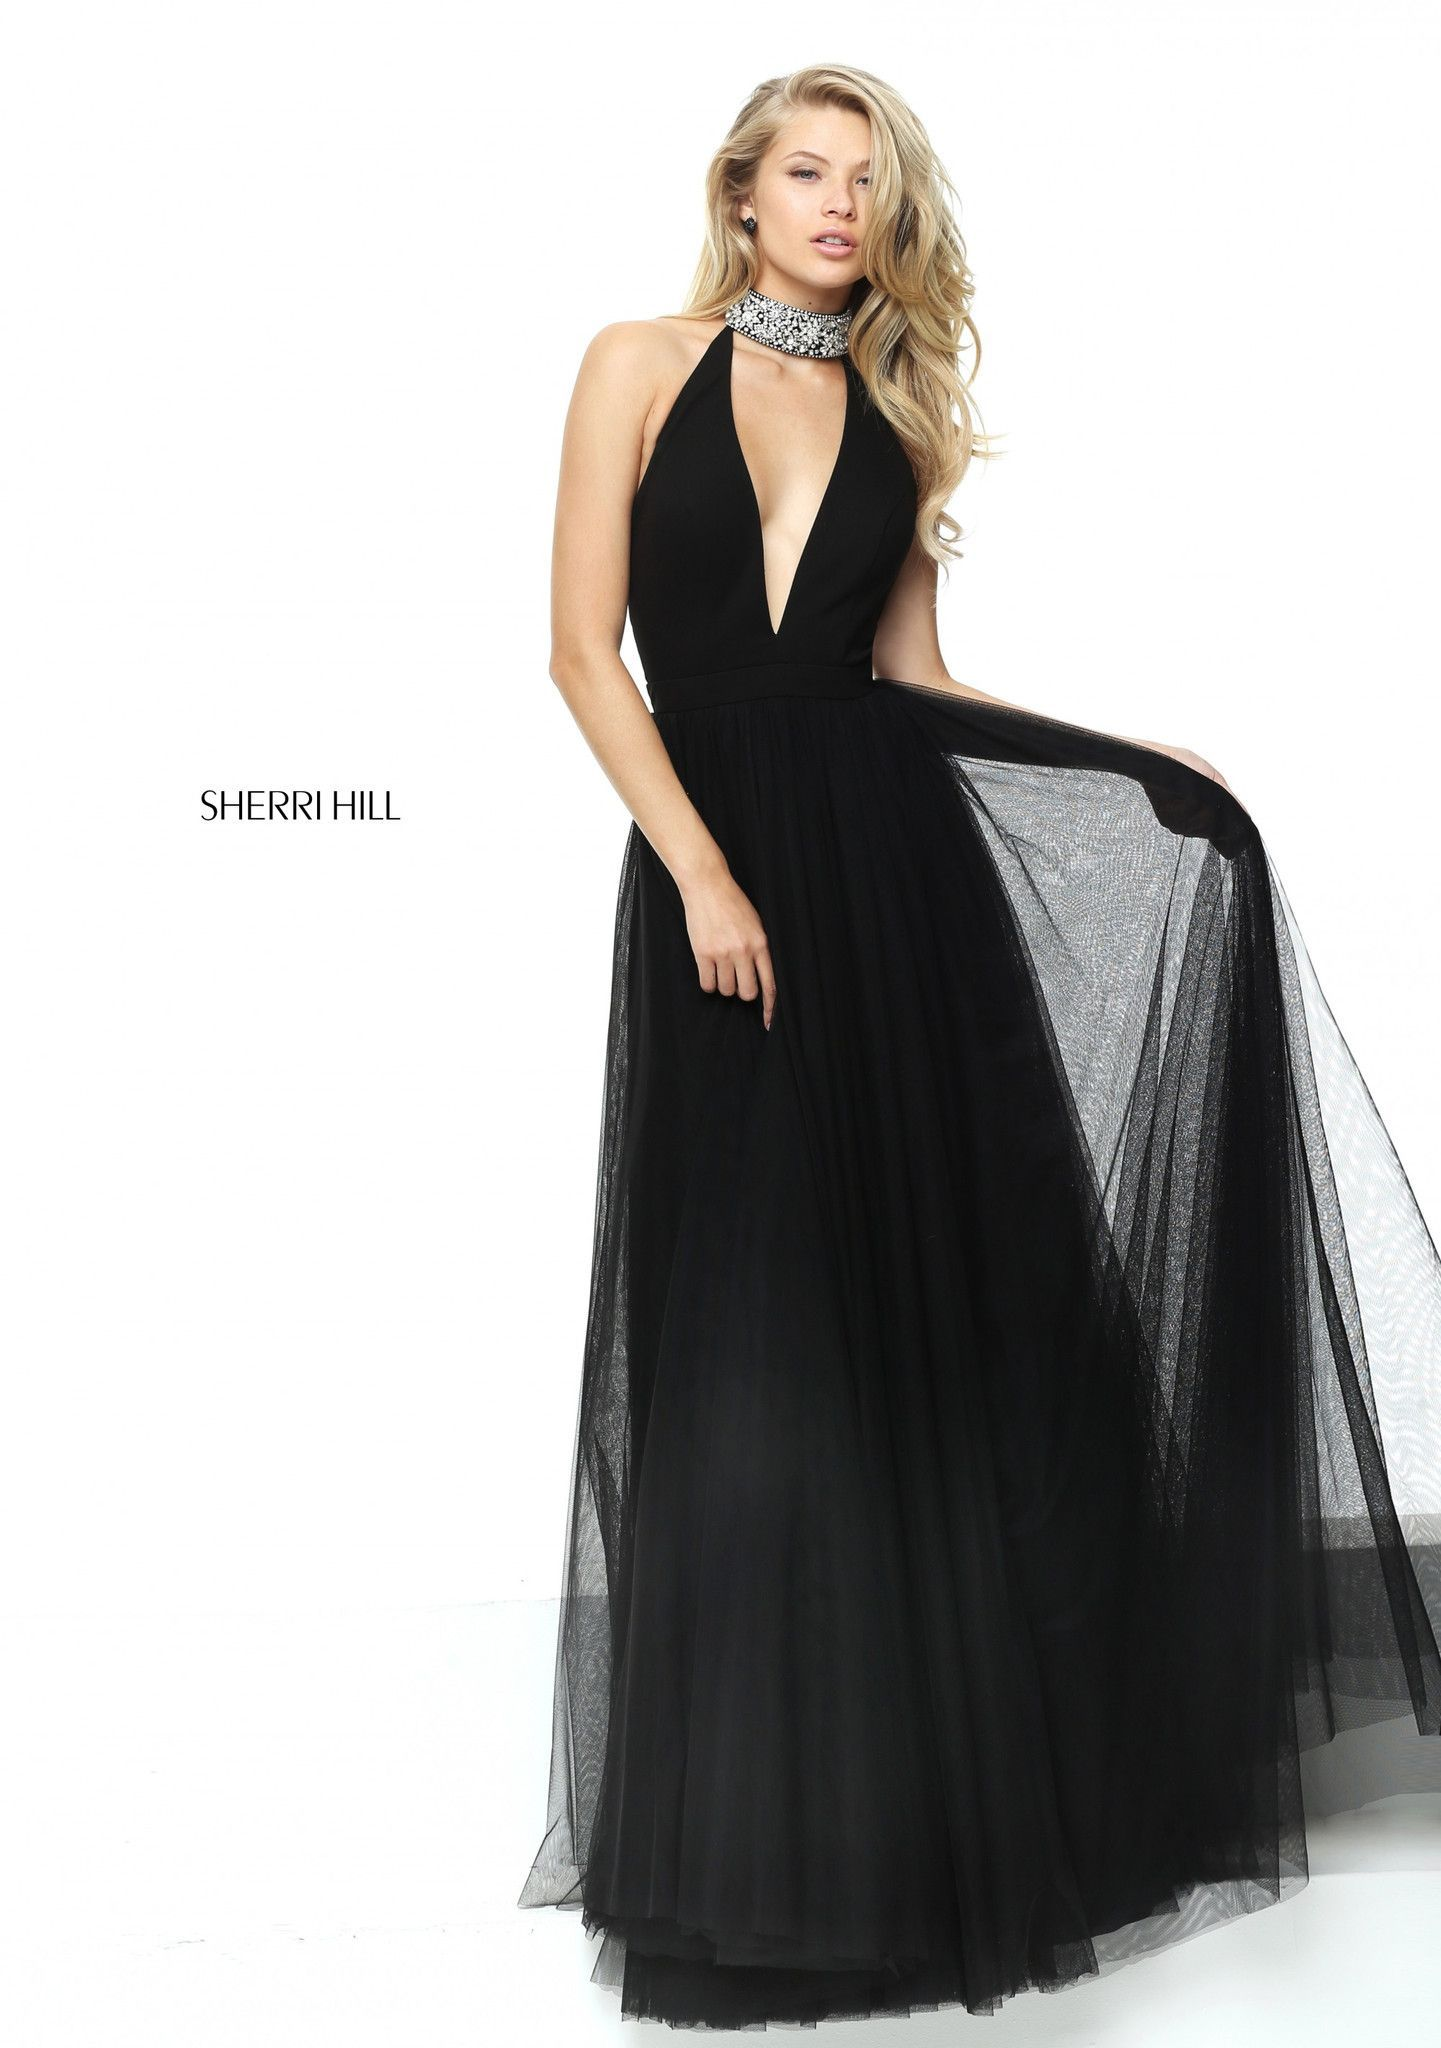 Sherri hill gowns and prom